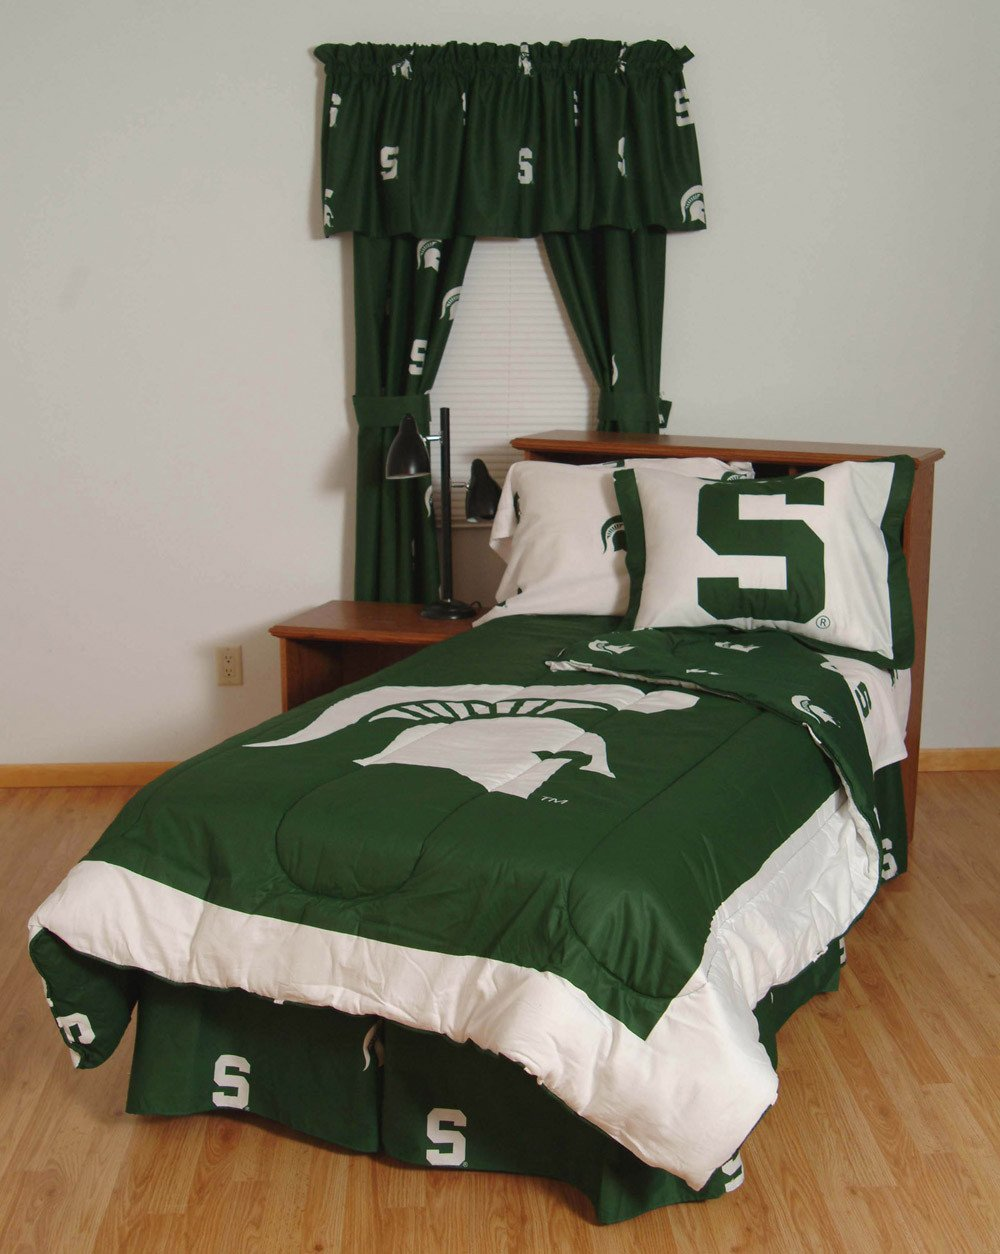 Michigan State Bed in a Bag Queen - With White Sheets - MSUBBQUW by College Covers from College Covers